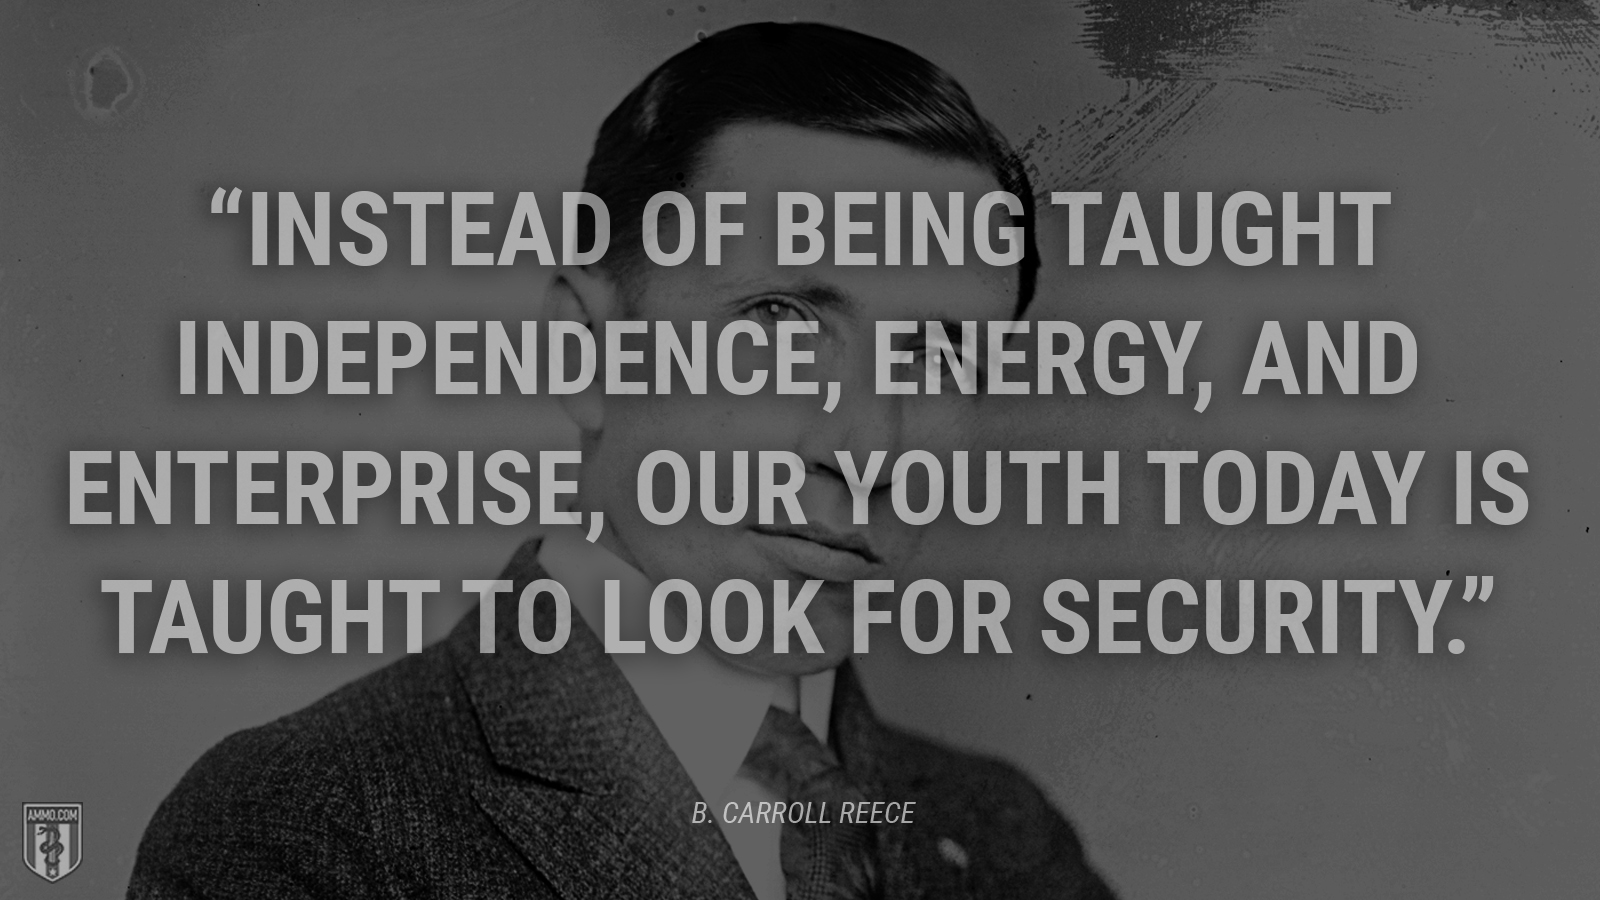 """Instead of being taught independence, energy, and enterprise, our youth today is taught to look for security."" - B. Carroll Reece"